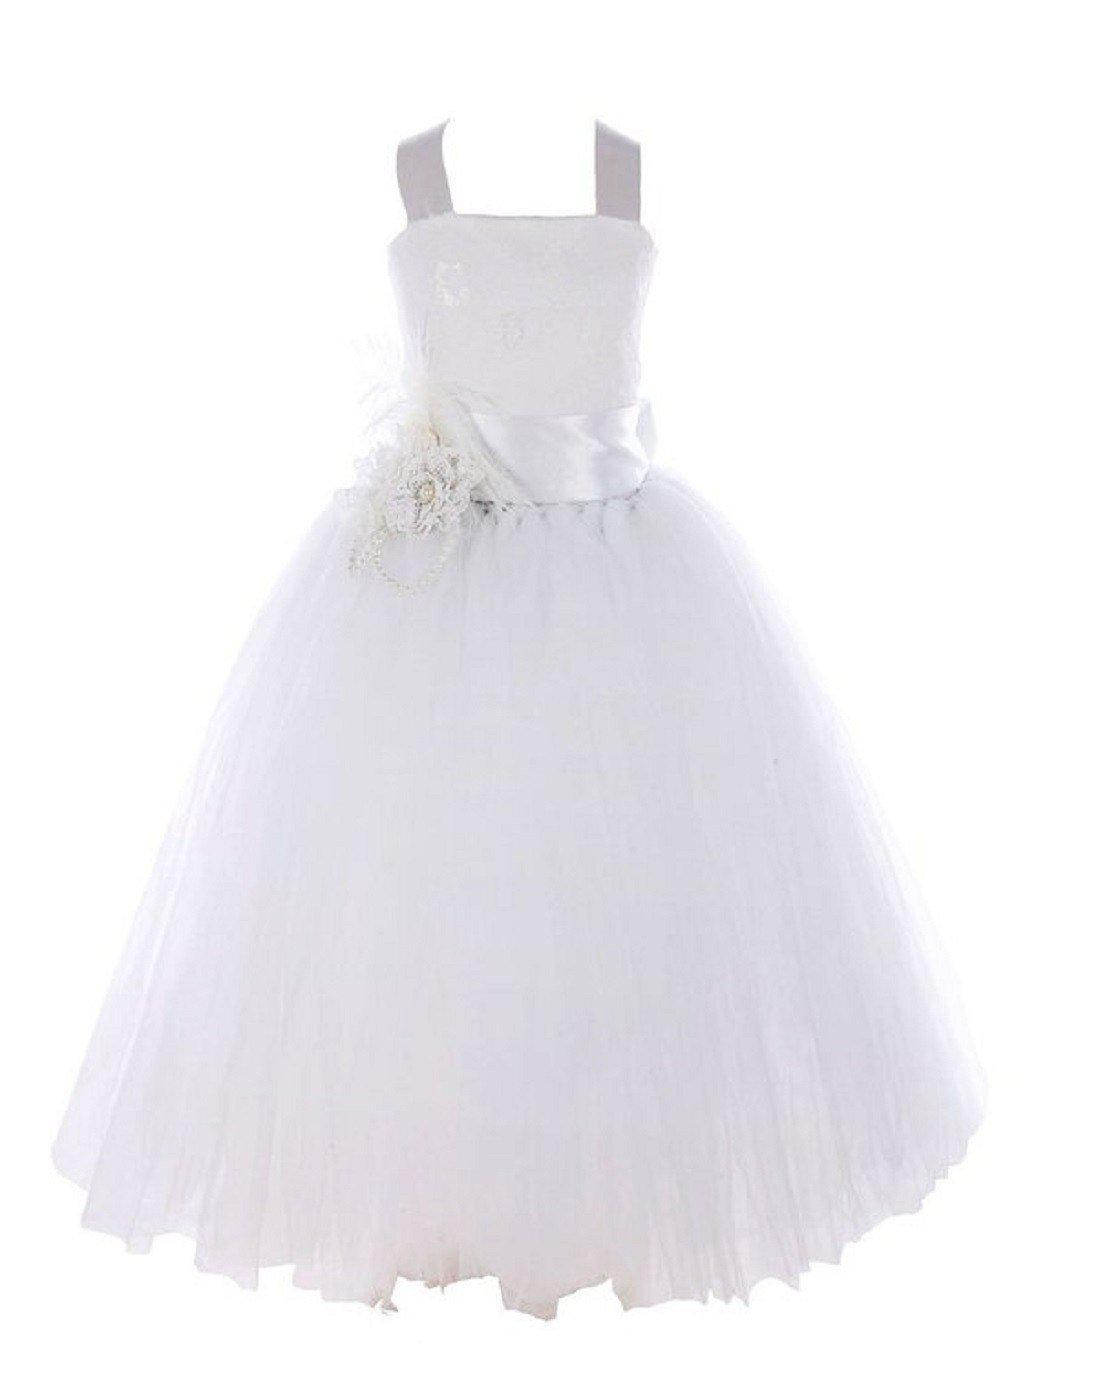 Fairy Tutu Flower Girl Dress White Tablecloths Factory